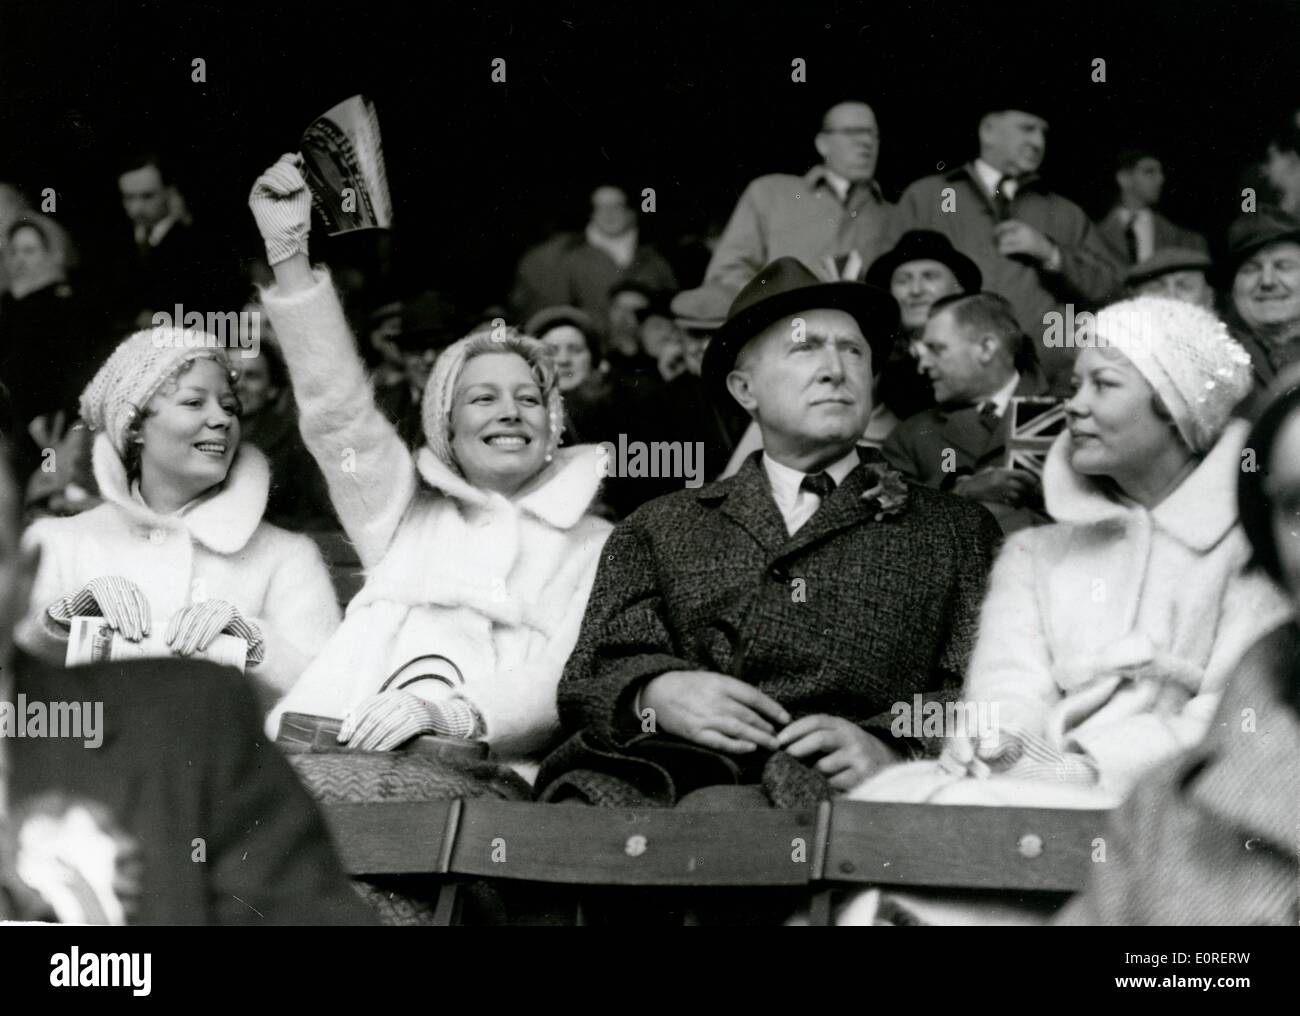 The Beverley Sisters cheering on Joy's husband Billy at a football game Stock Photo